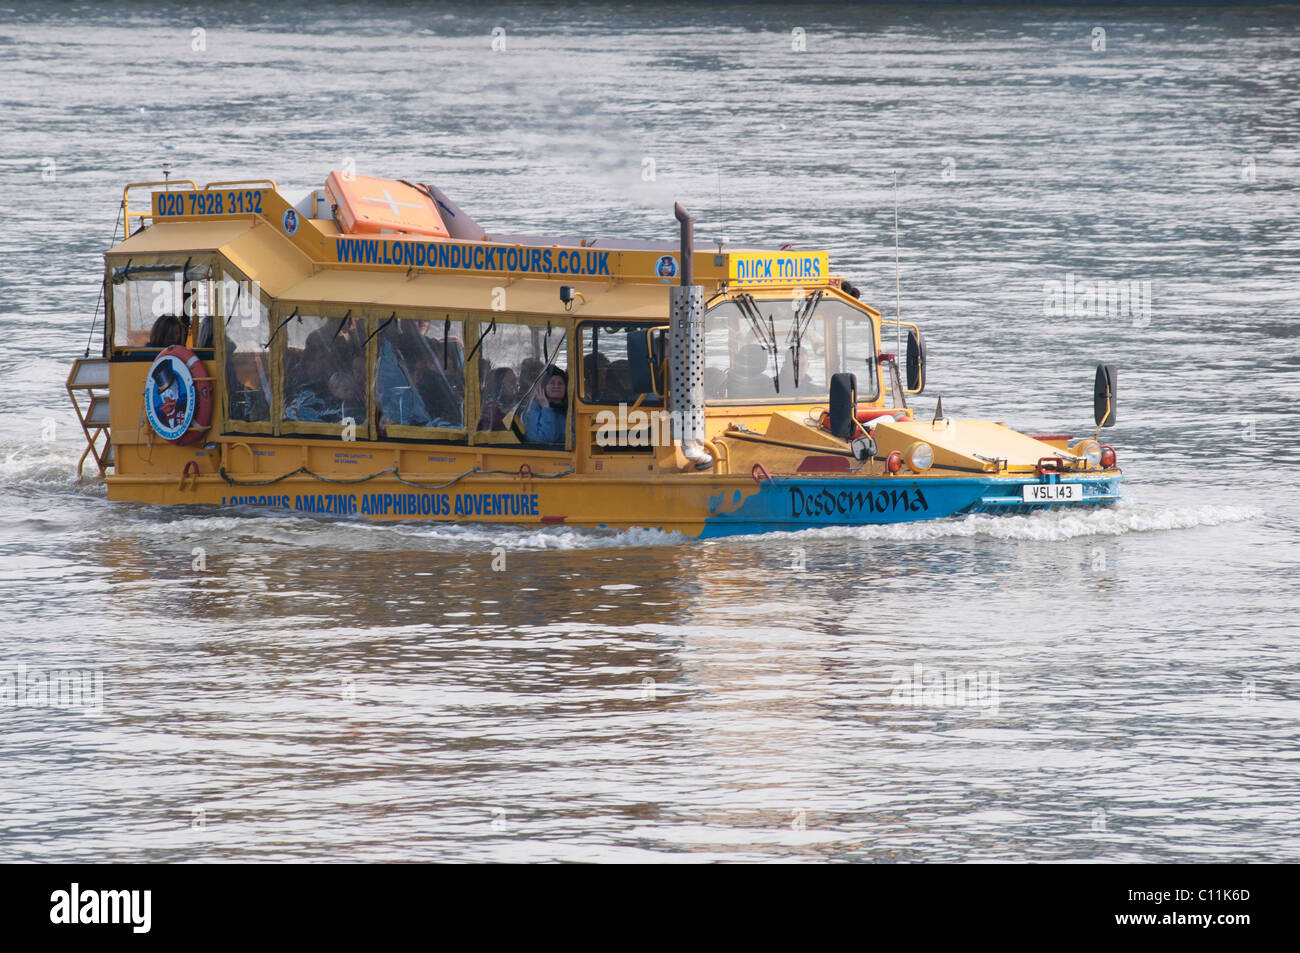 London Duck Tours yellow amphibious vehicle on the River Thames, London, England, UK - Stock Image